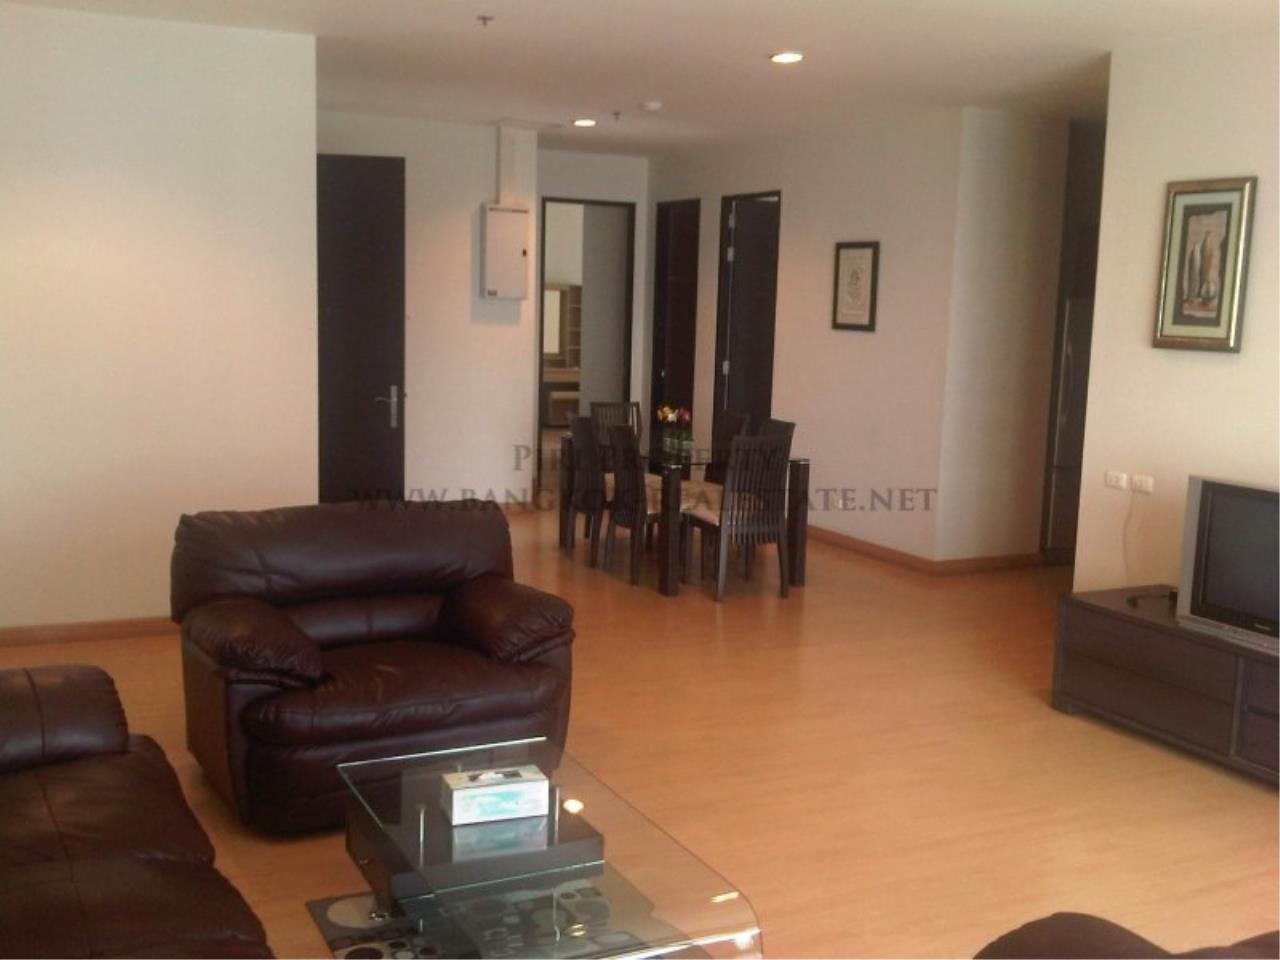 Piri Property Agency's 3 Bedroom Penthouse Unit - AP Citismart for Rent 1